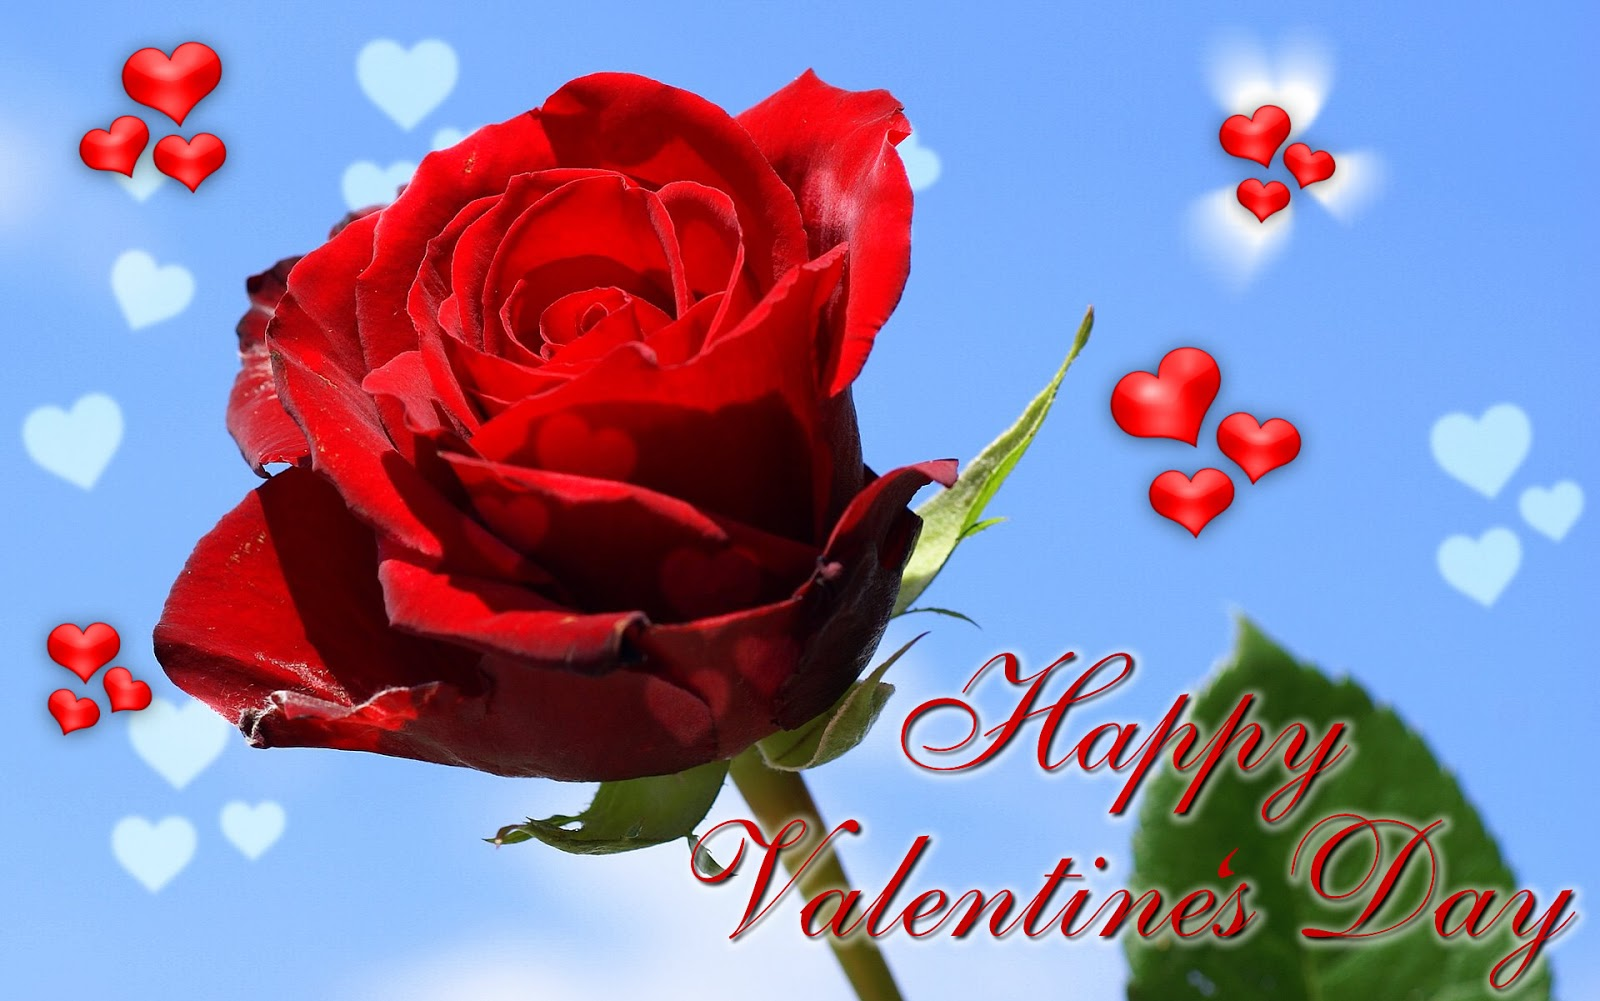 Full Hd Wall Pictures: Happy Valentine Day Hd Wallpaper